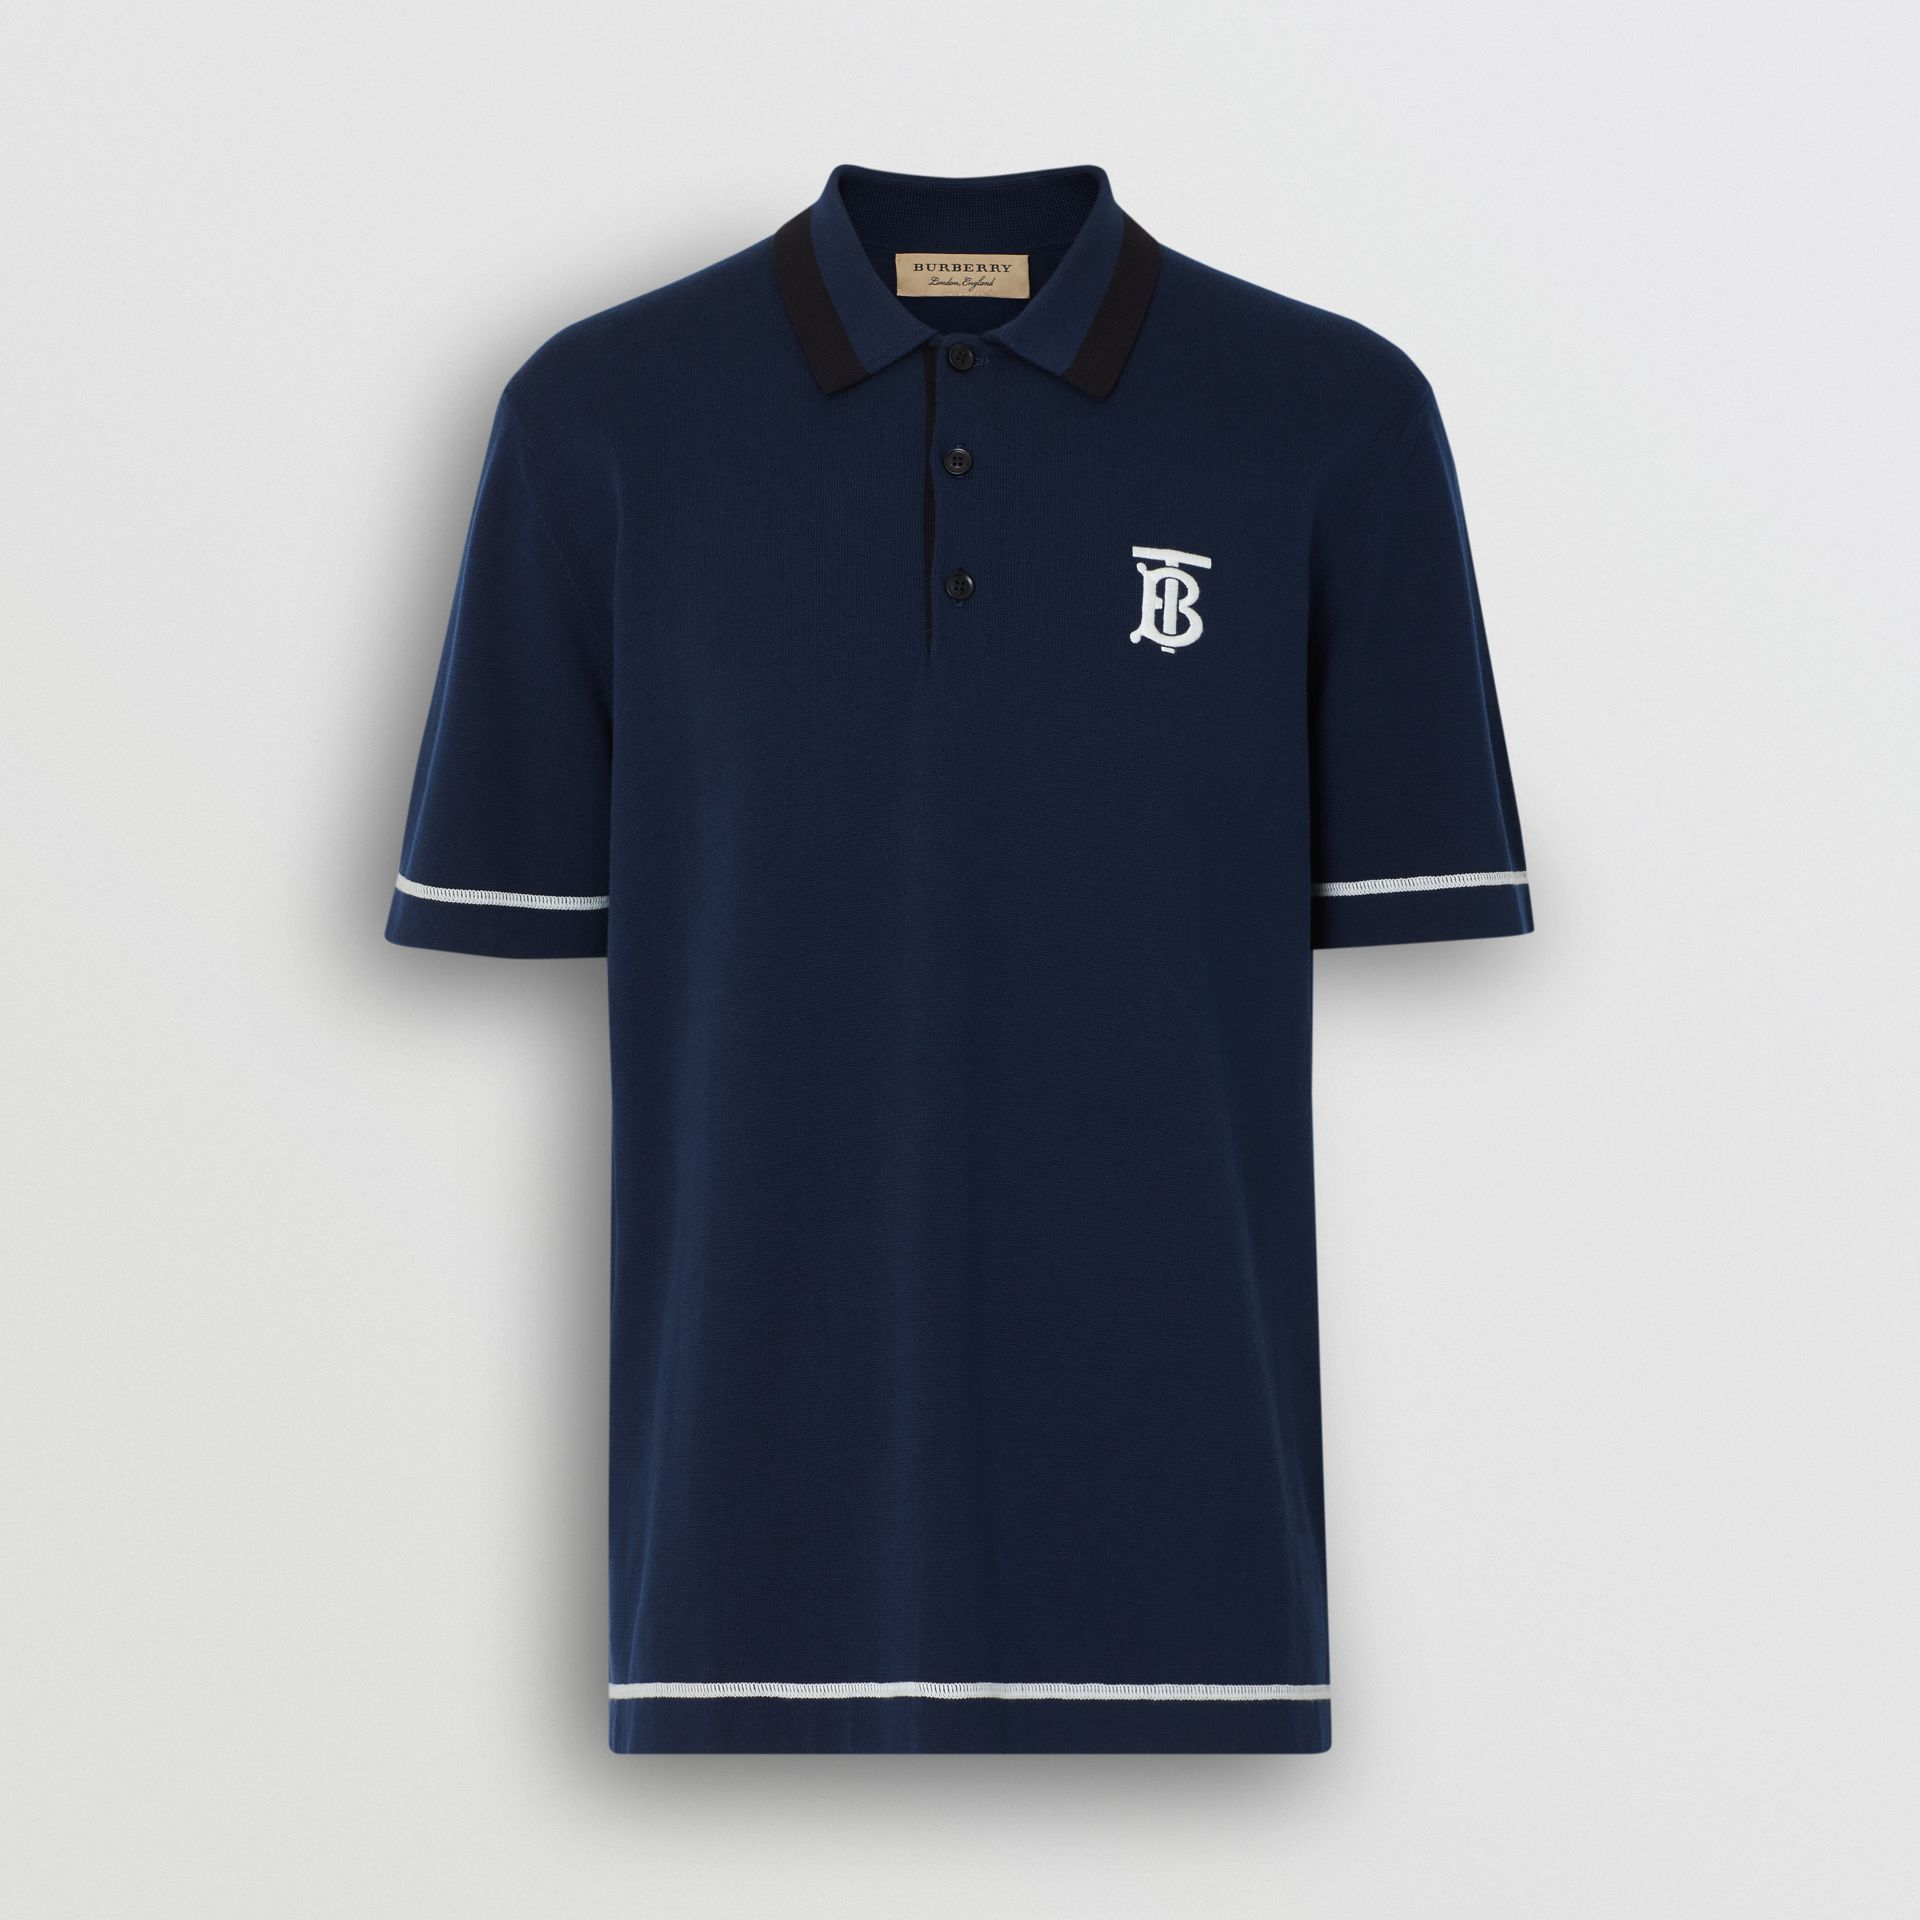 Monogram Motif Tipped Cotton Polo Shirt in Navy - Men | Burberry - gallery image 3